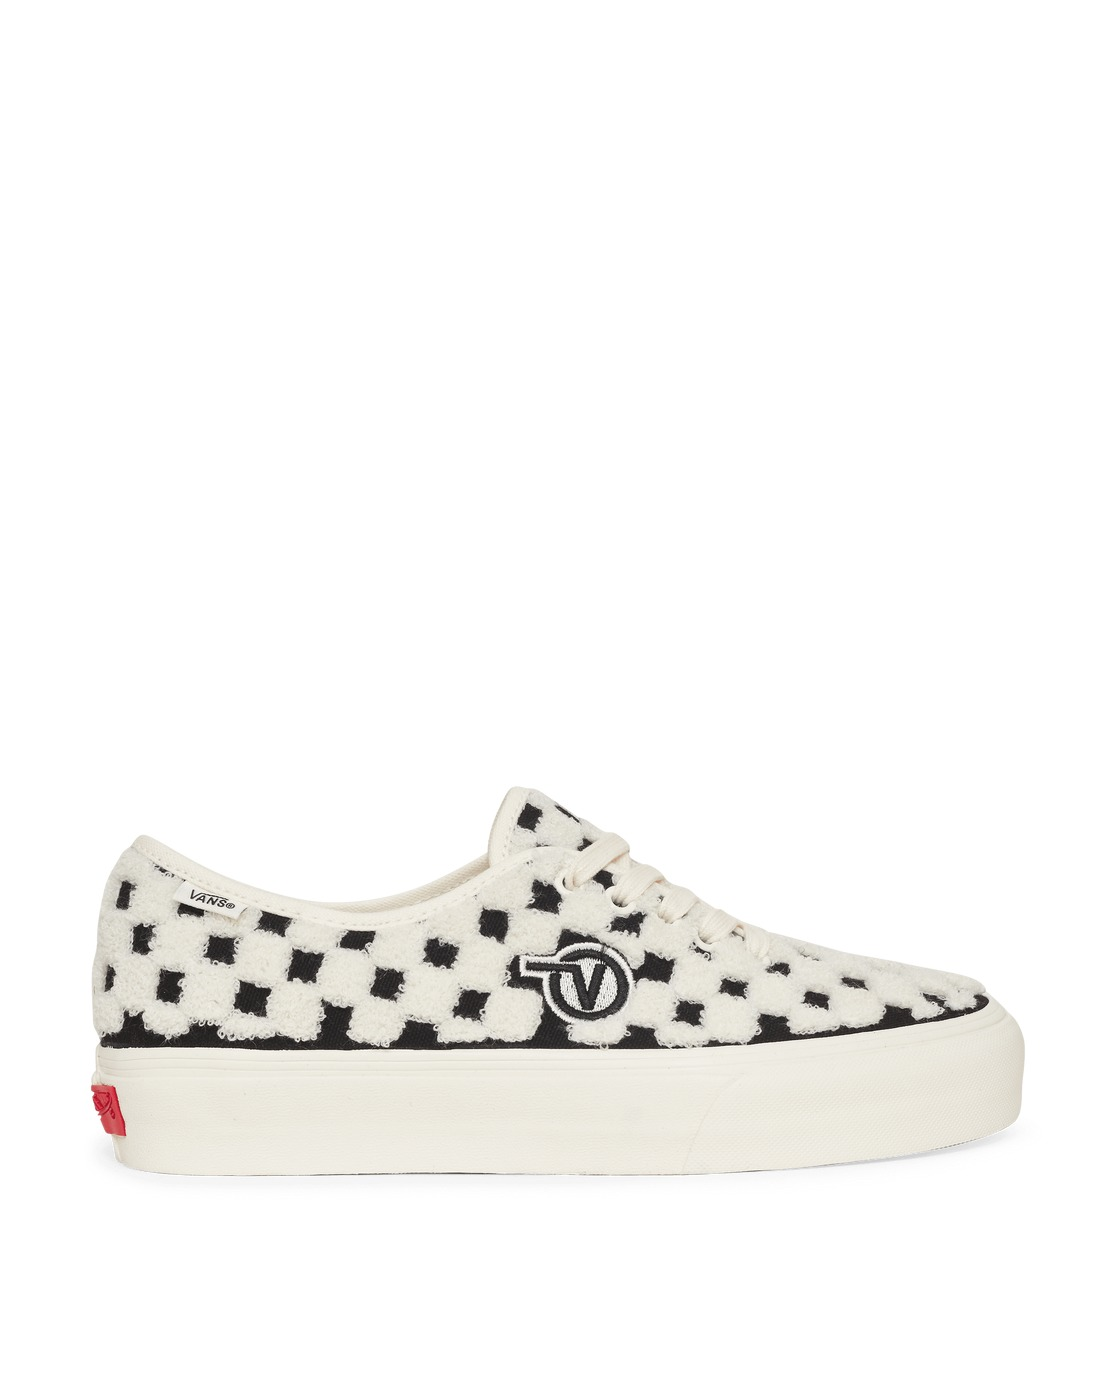 Photo: Vans Authentic One Piece Lx Sneakers Blk/Mrshmlw